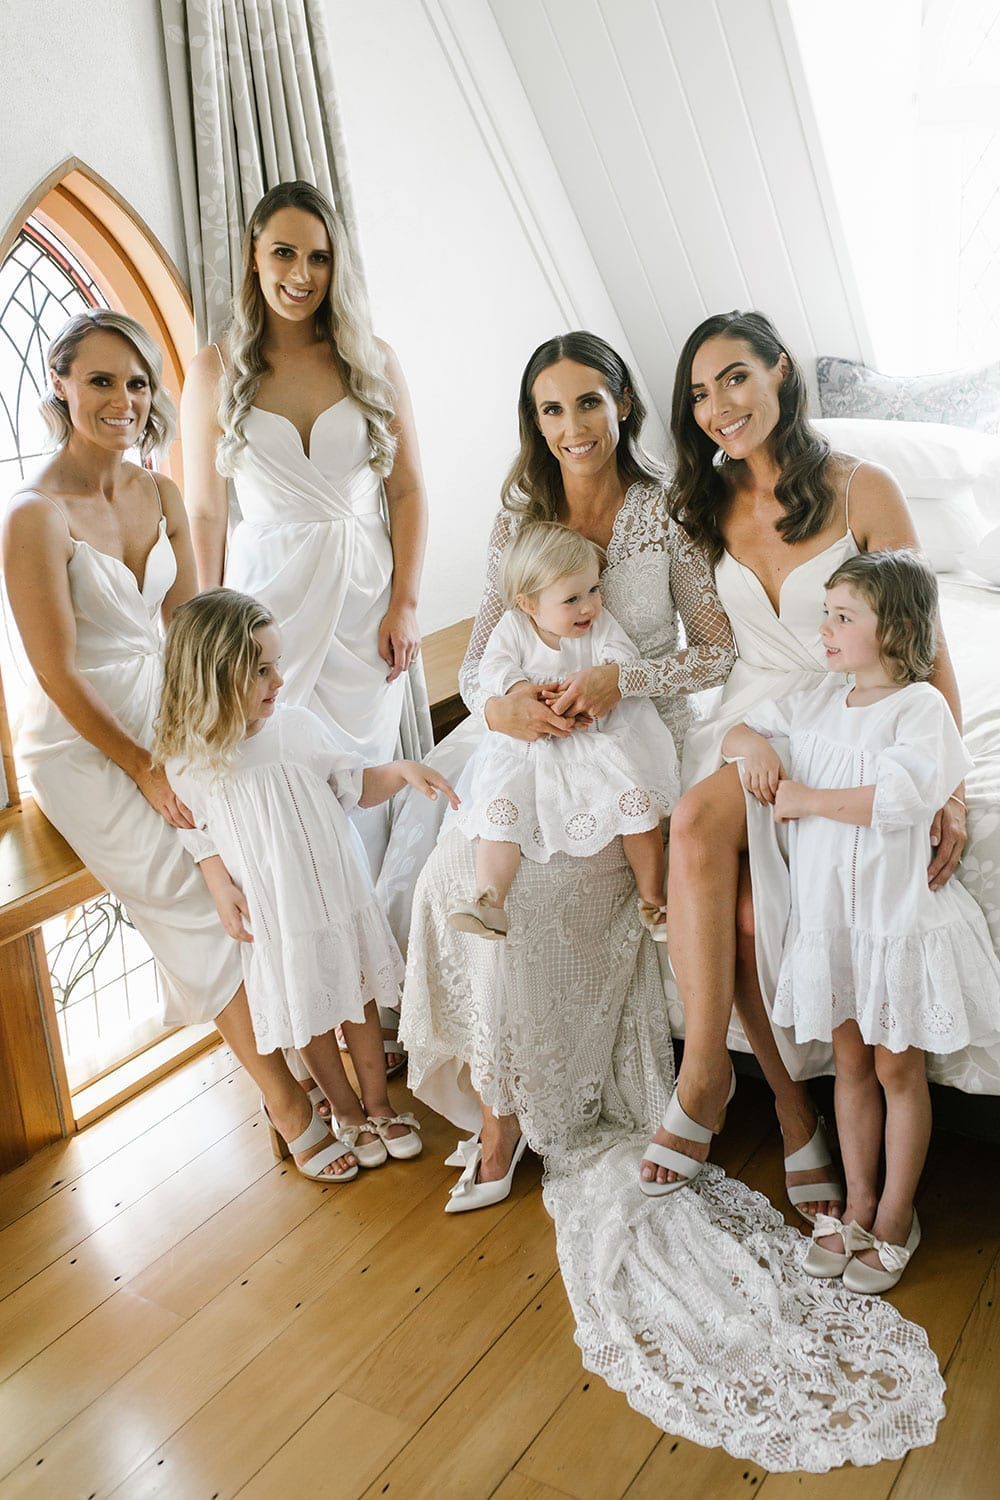 Vinka Design Features Real Weddings - Bride in bespoke fitted lace gown with bridesmaids and children before wedding